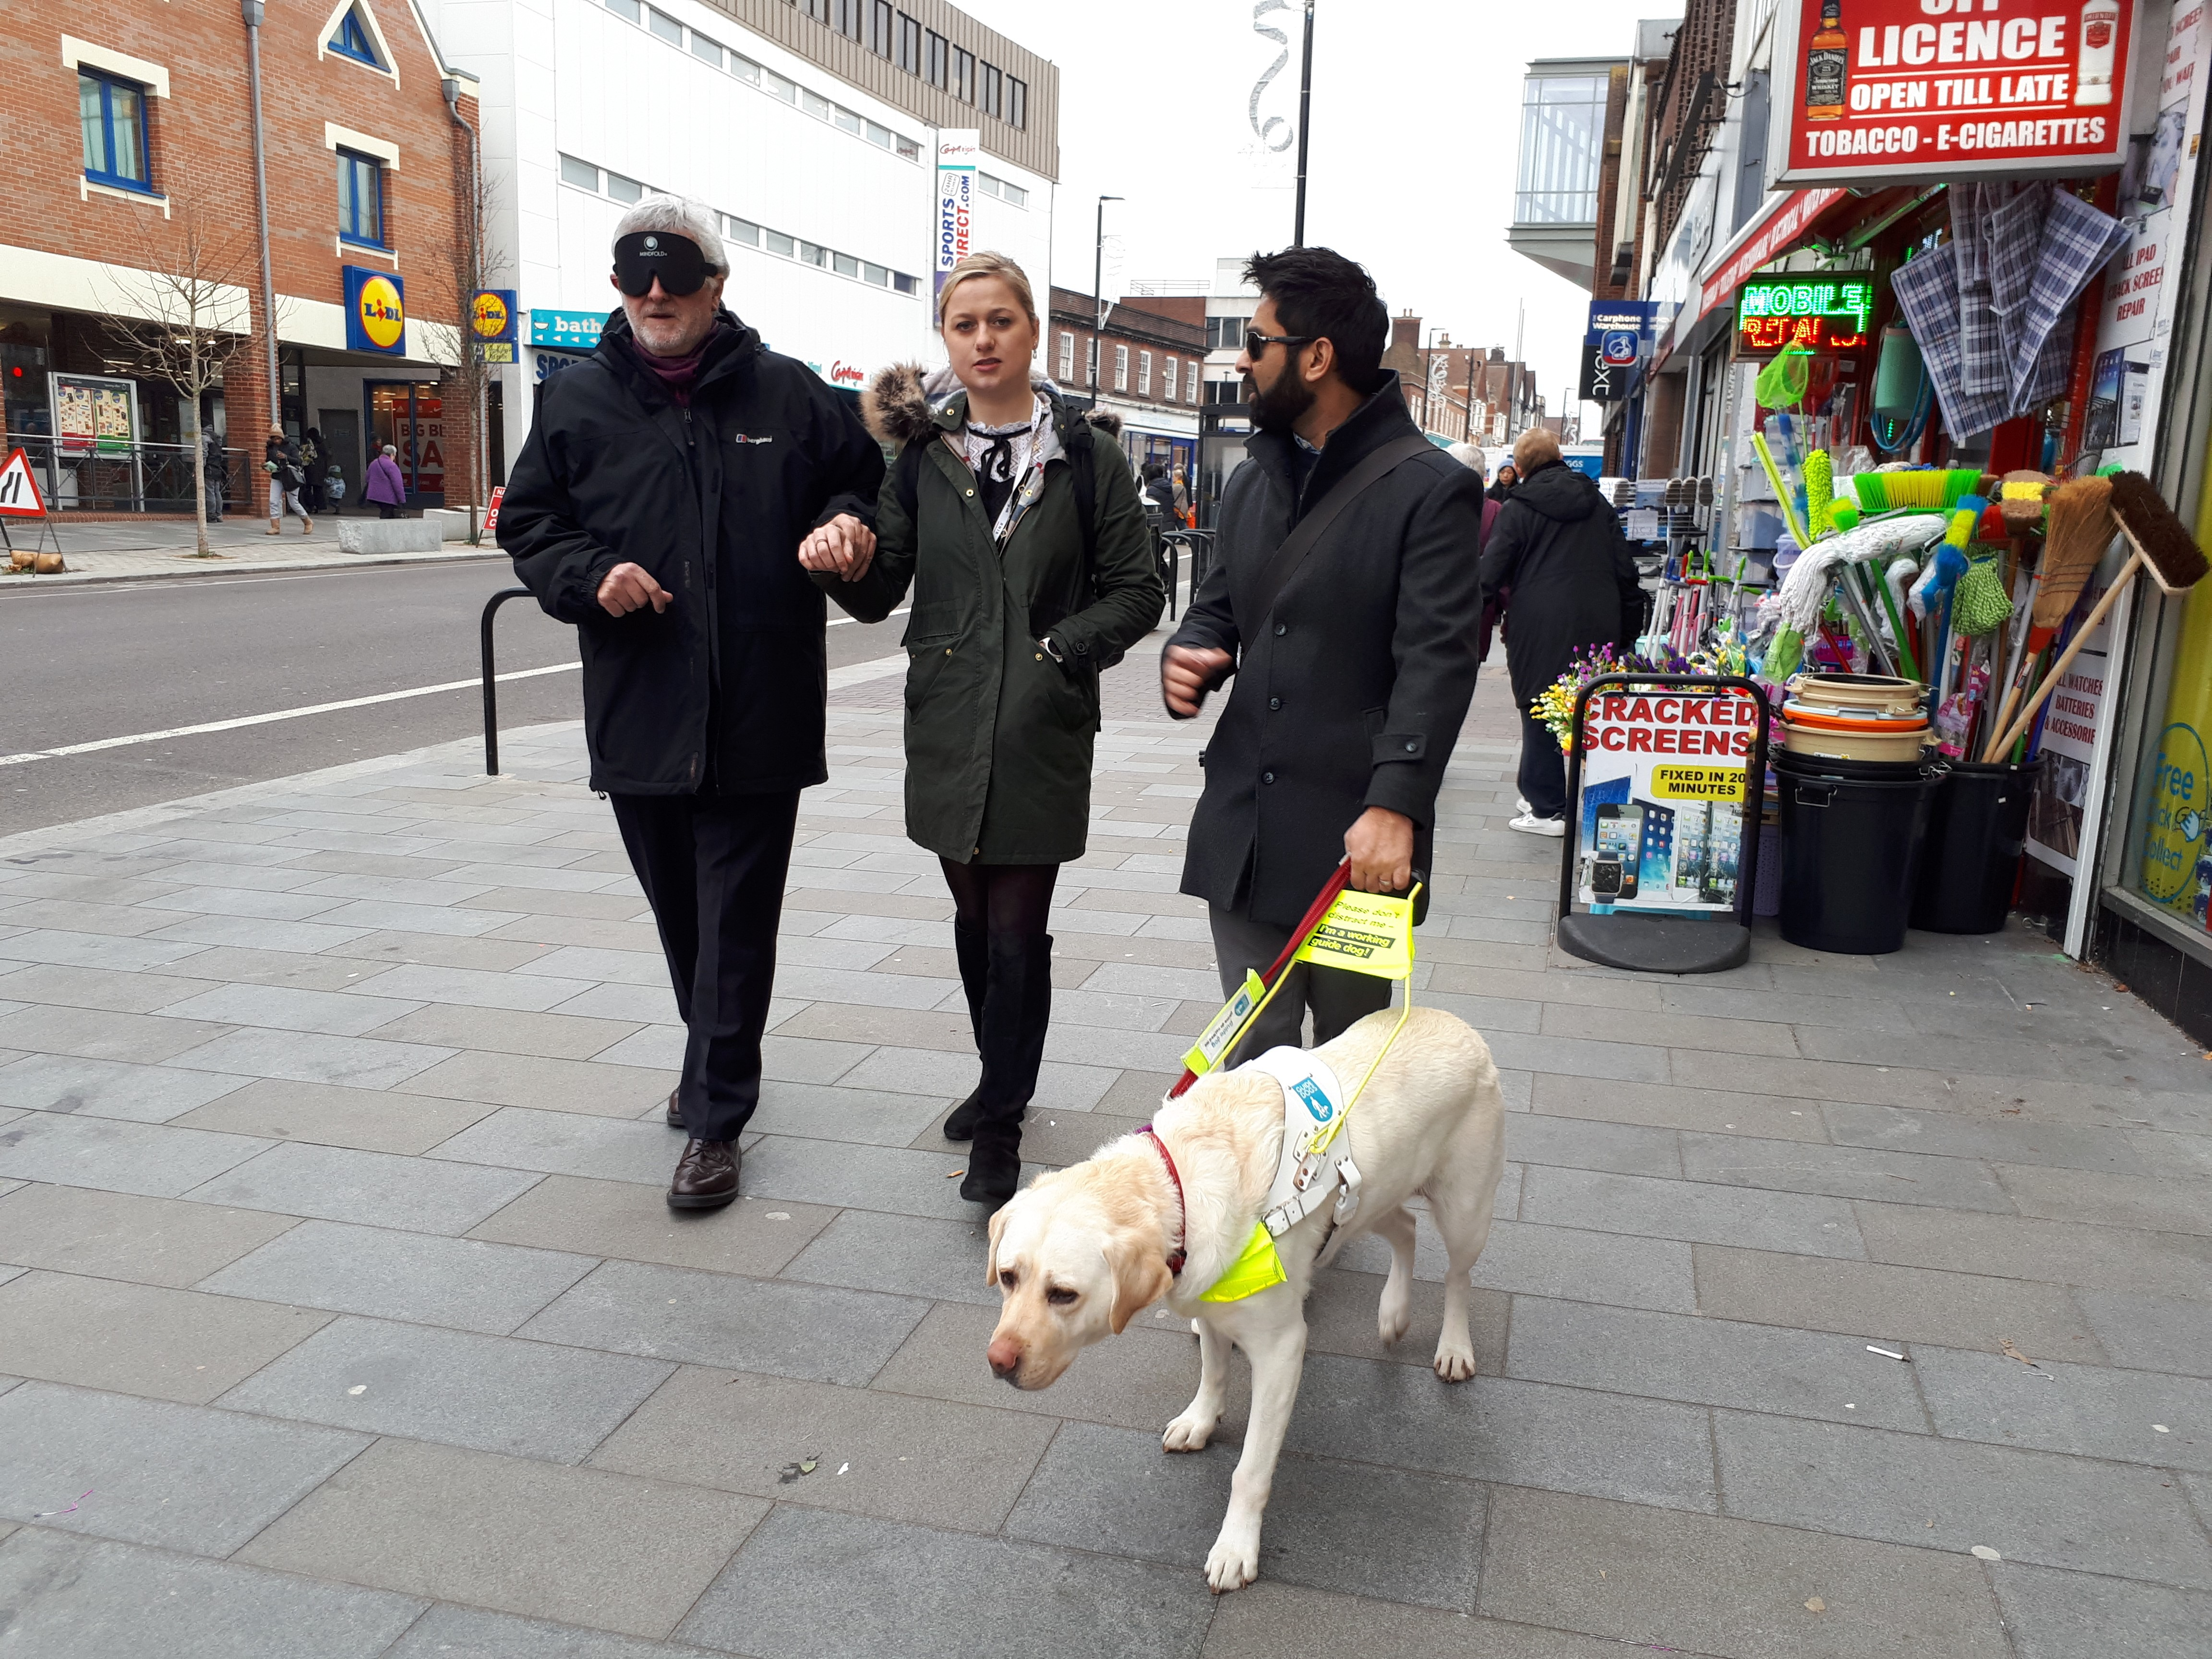 Image shows MP Clive Efford blindfolded and being guided down a street by Emily Marr, RNIB's Parliamentary Affairs Officer, and next to Emily, Dr Amit Patel with his guide dog kika.